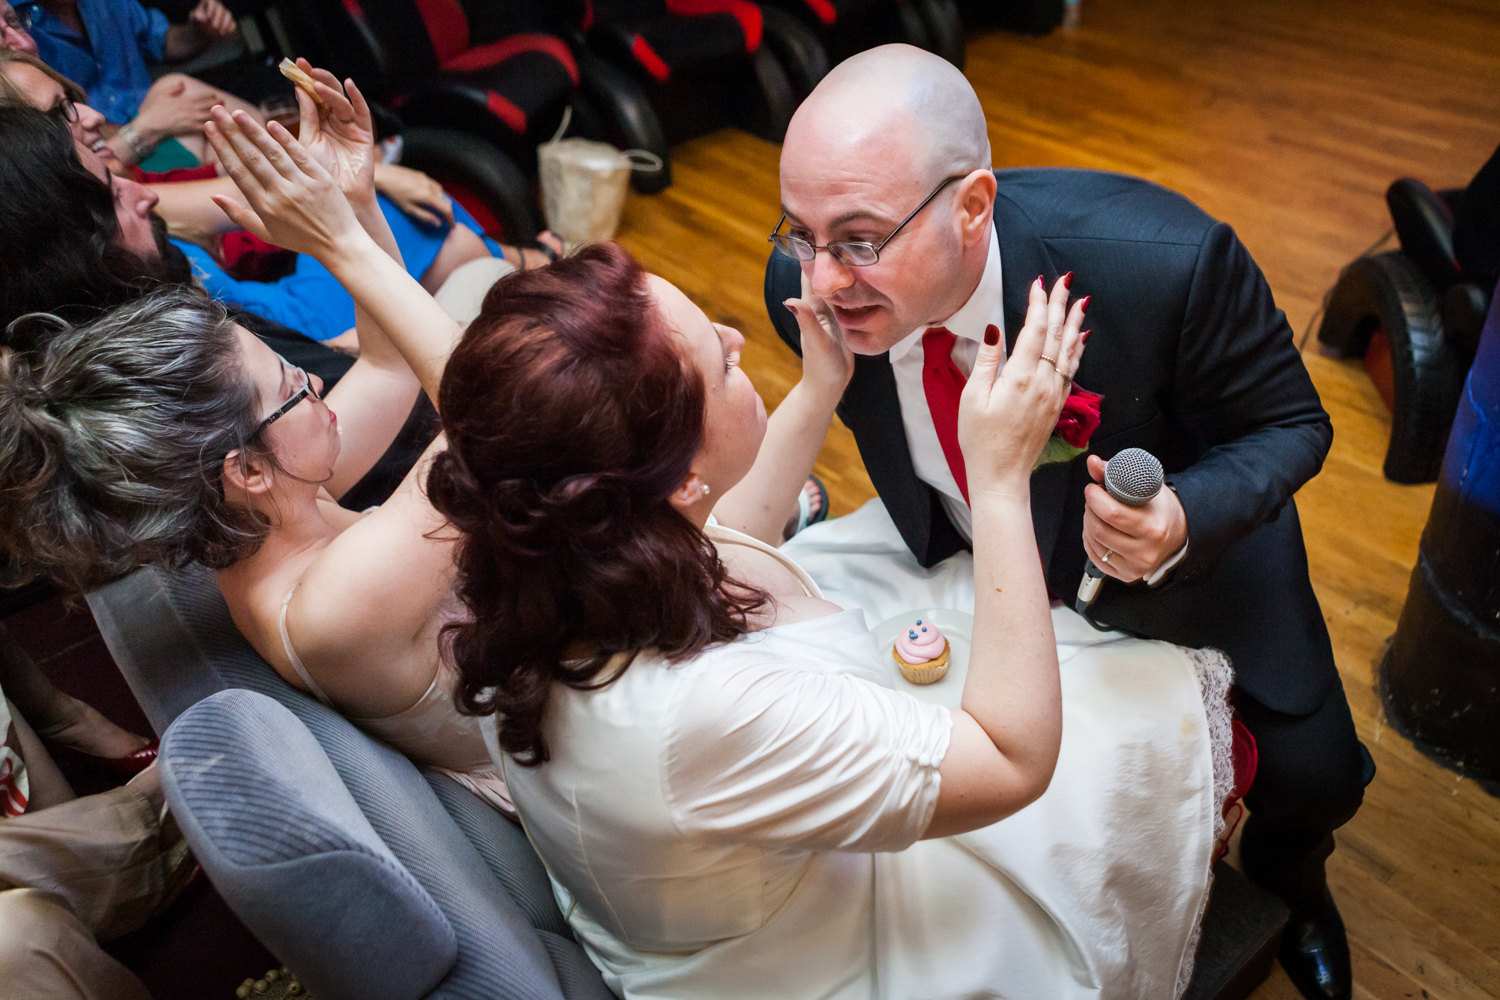 Groom bending down to bride at a DUMBO wedding